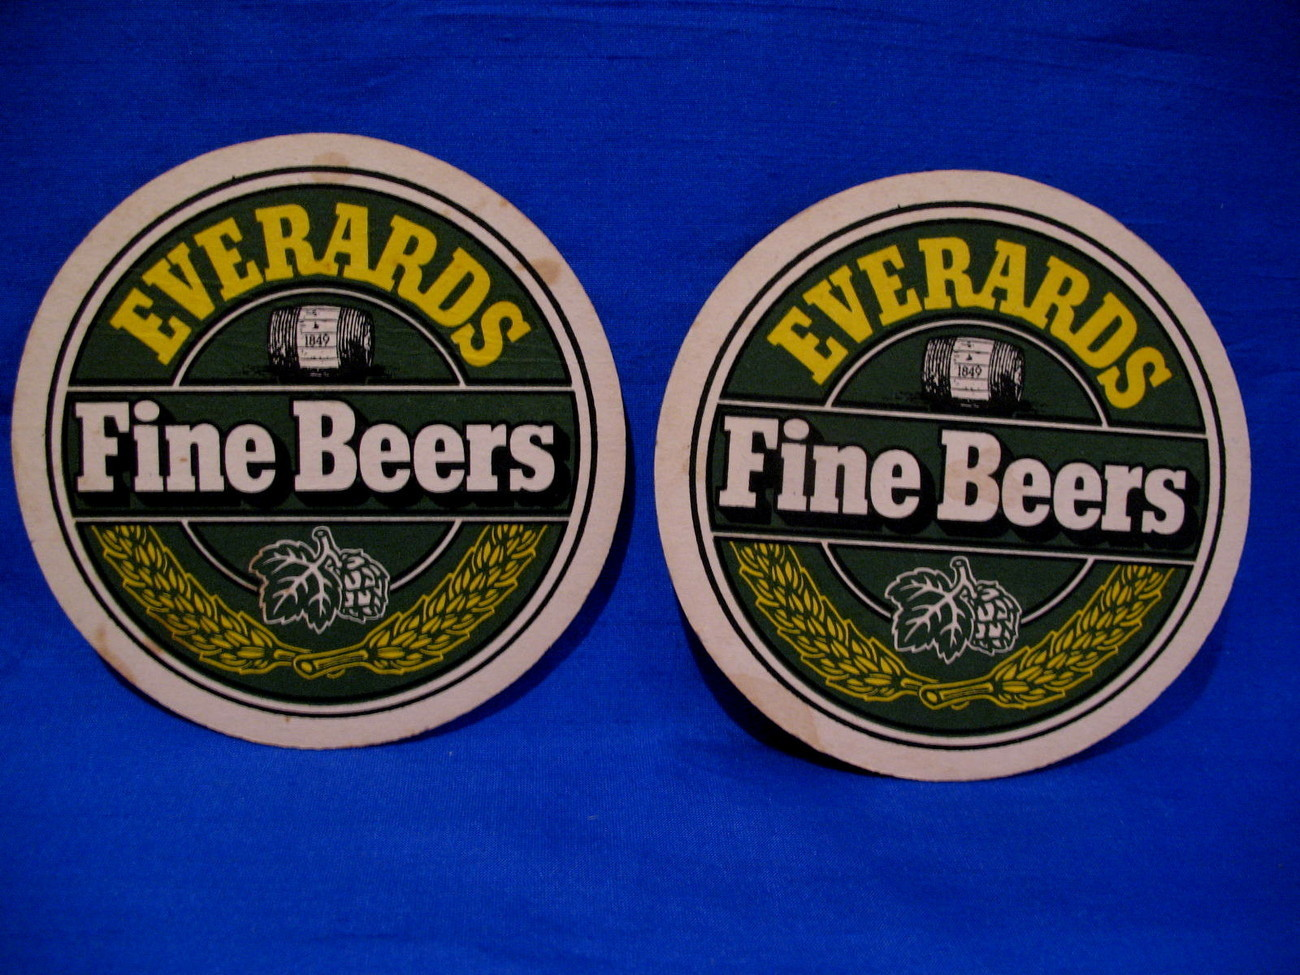 Everards Fine Beer Coasters Vintage UK. Souvenir set of 2